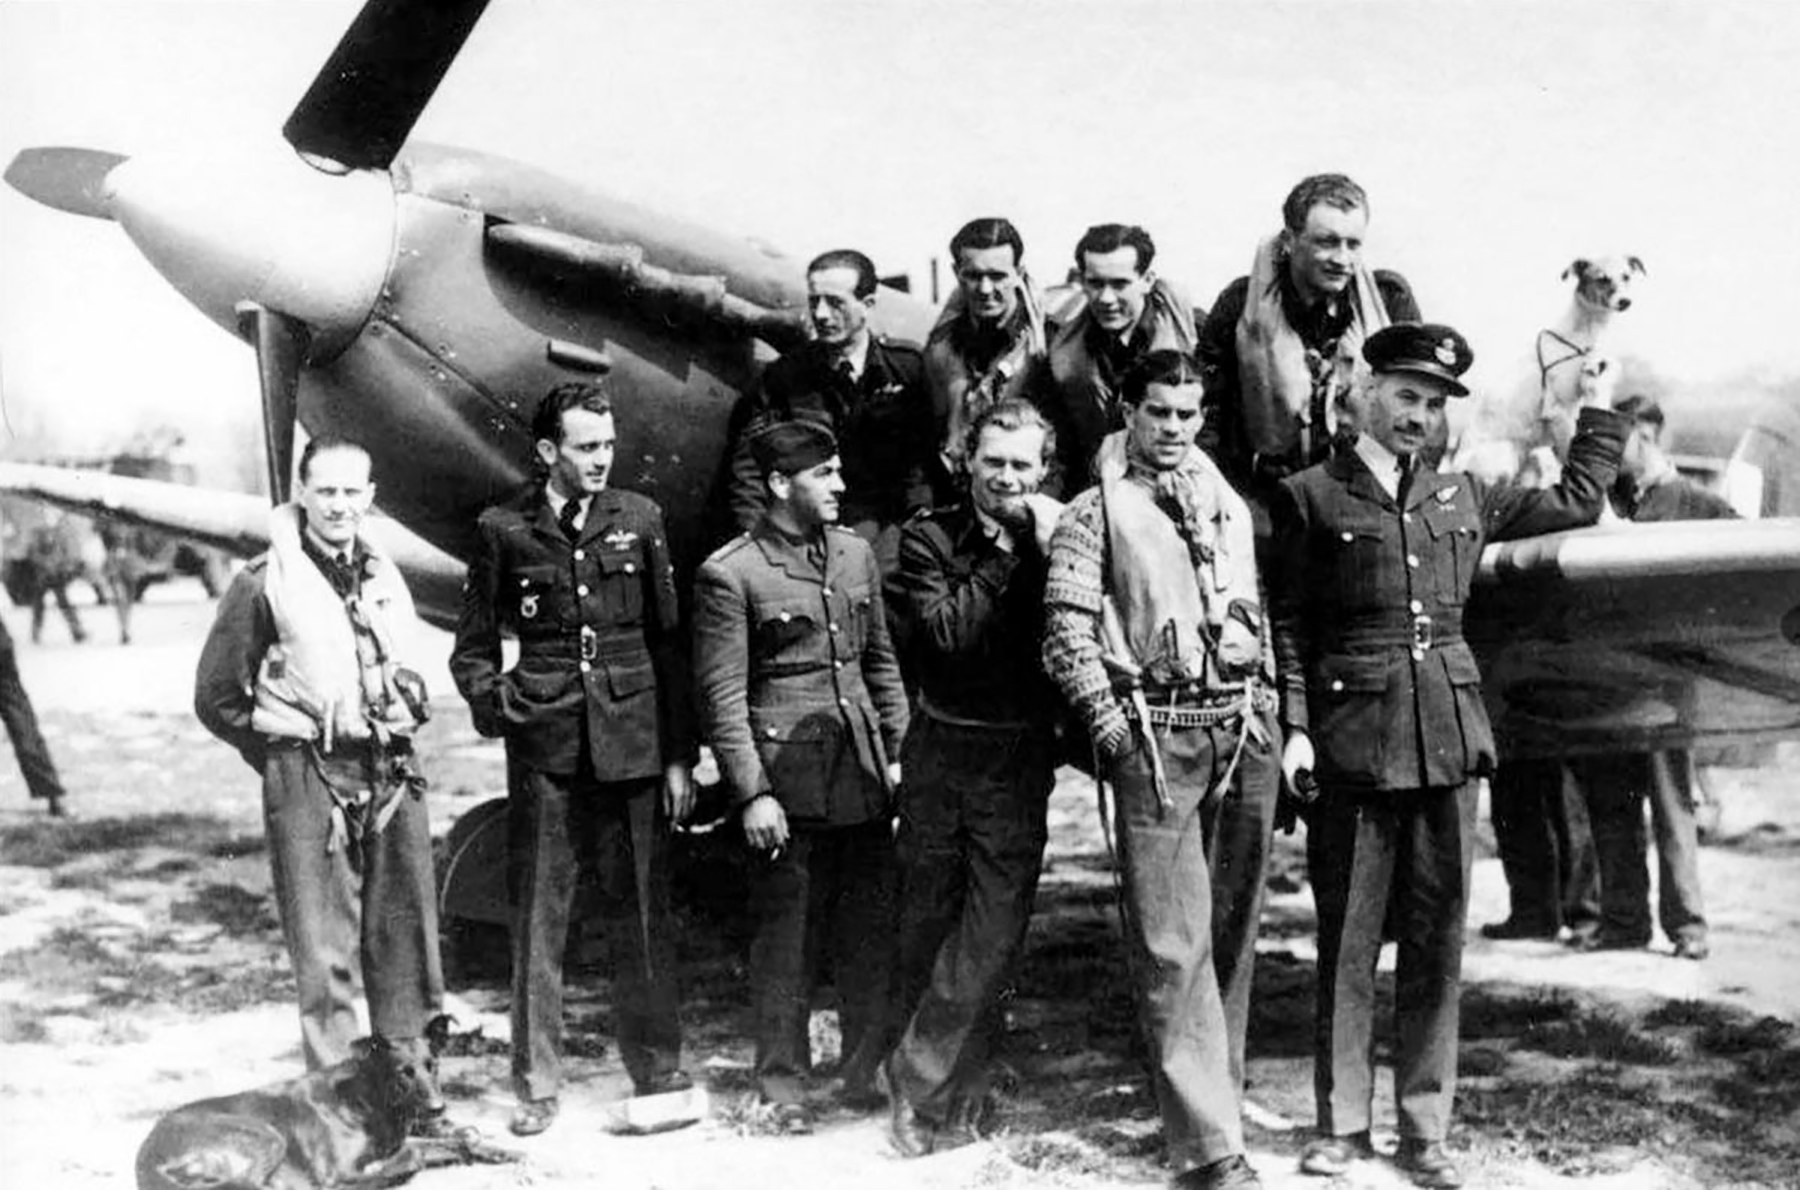 Aircrew RAF 313Sqn Czech pilots pose next to a Spitfire like the jumper Hornchurch Mar 1942 01